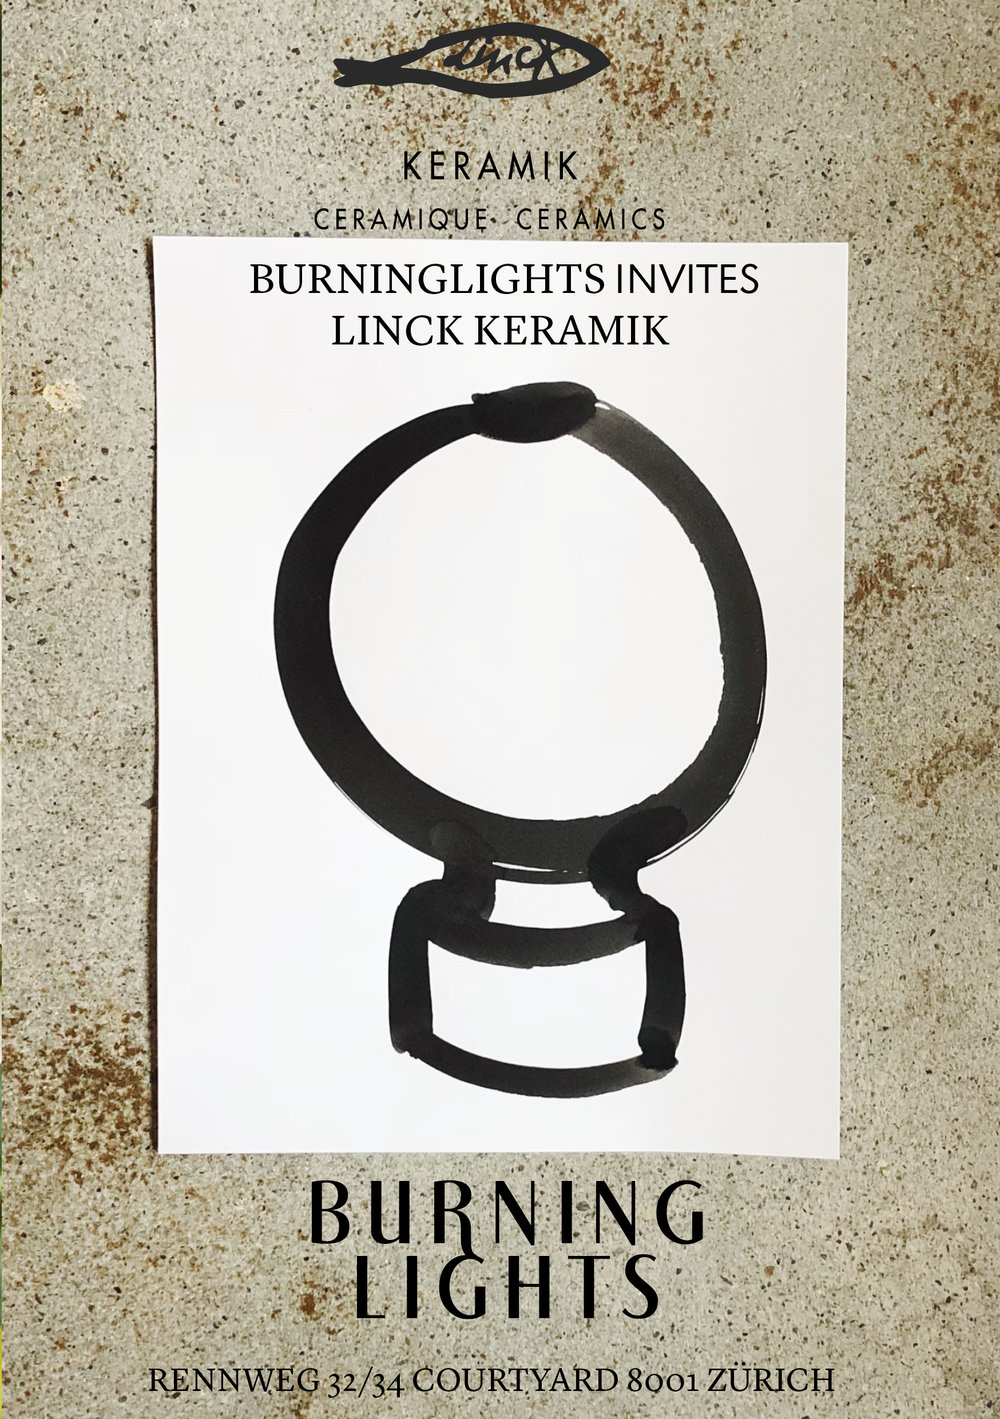 Burninglights_linck3.jpg